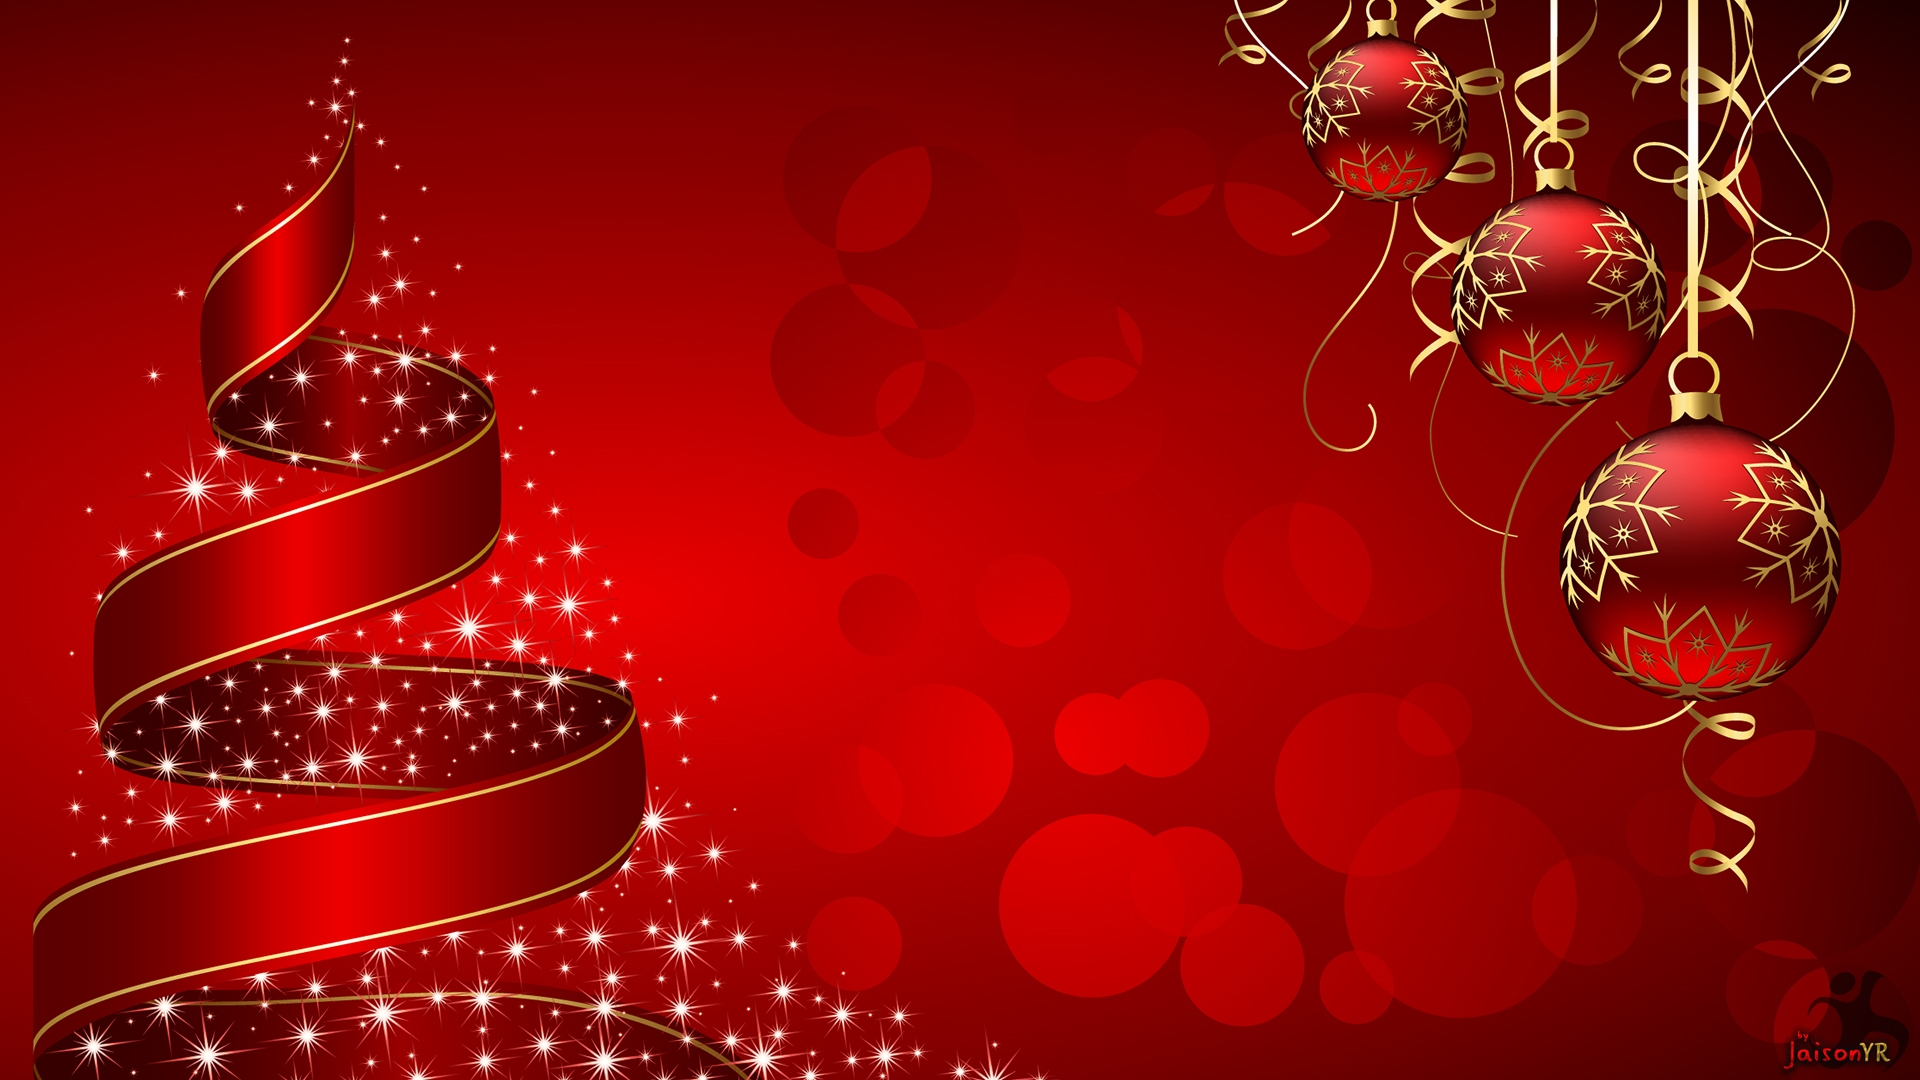 Group Of Christmas Wallpaper For Large Screens